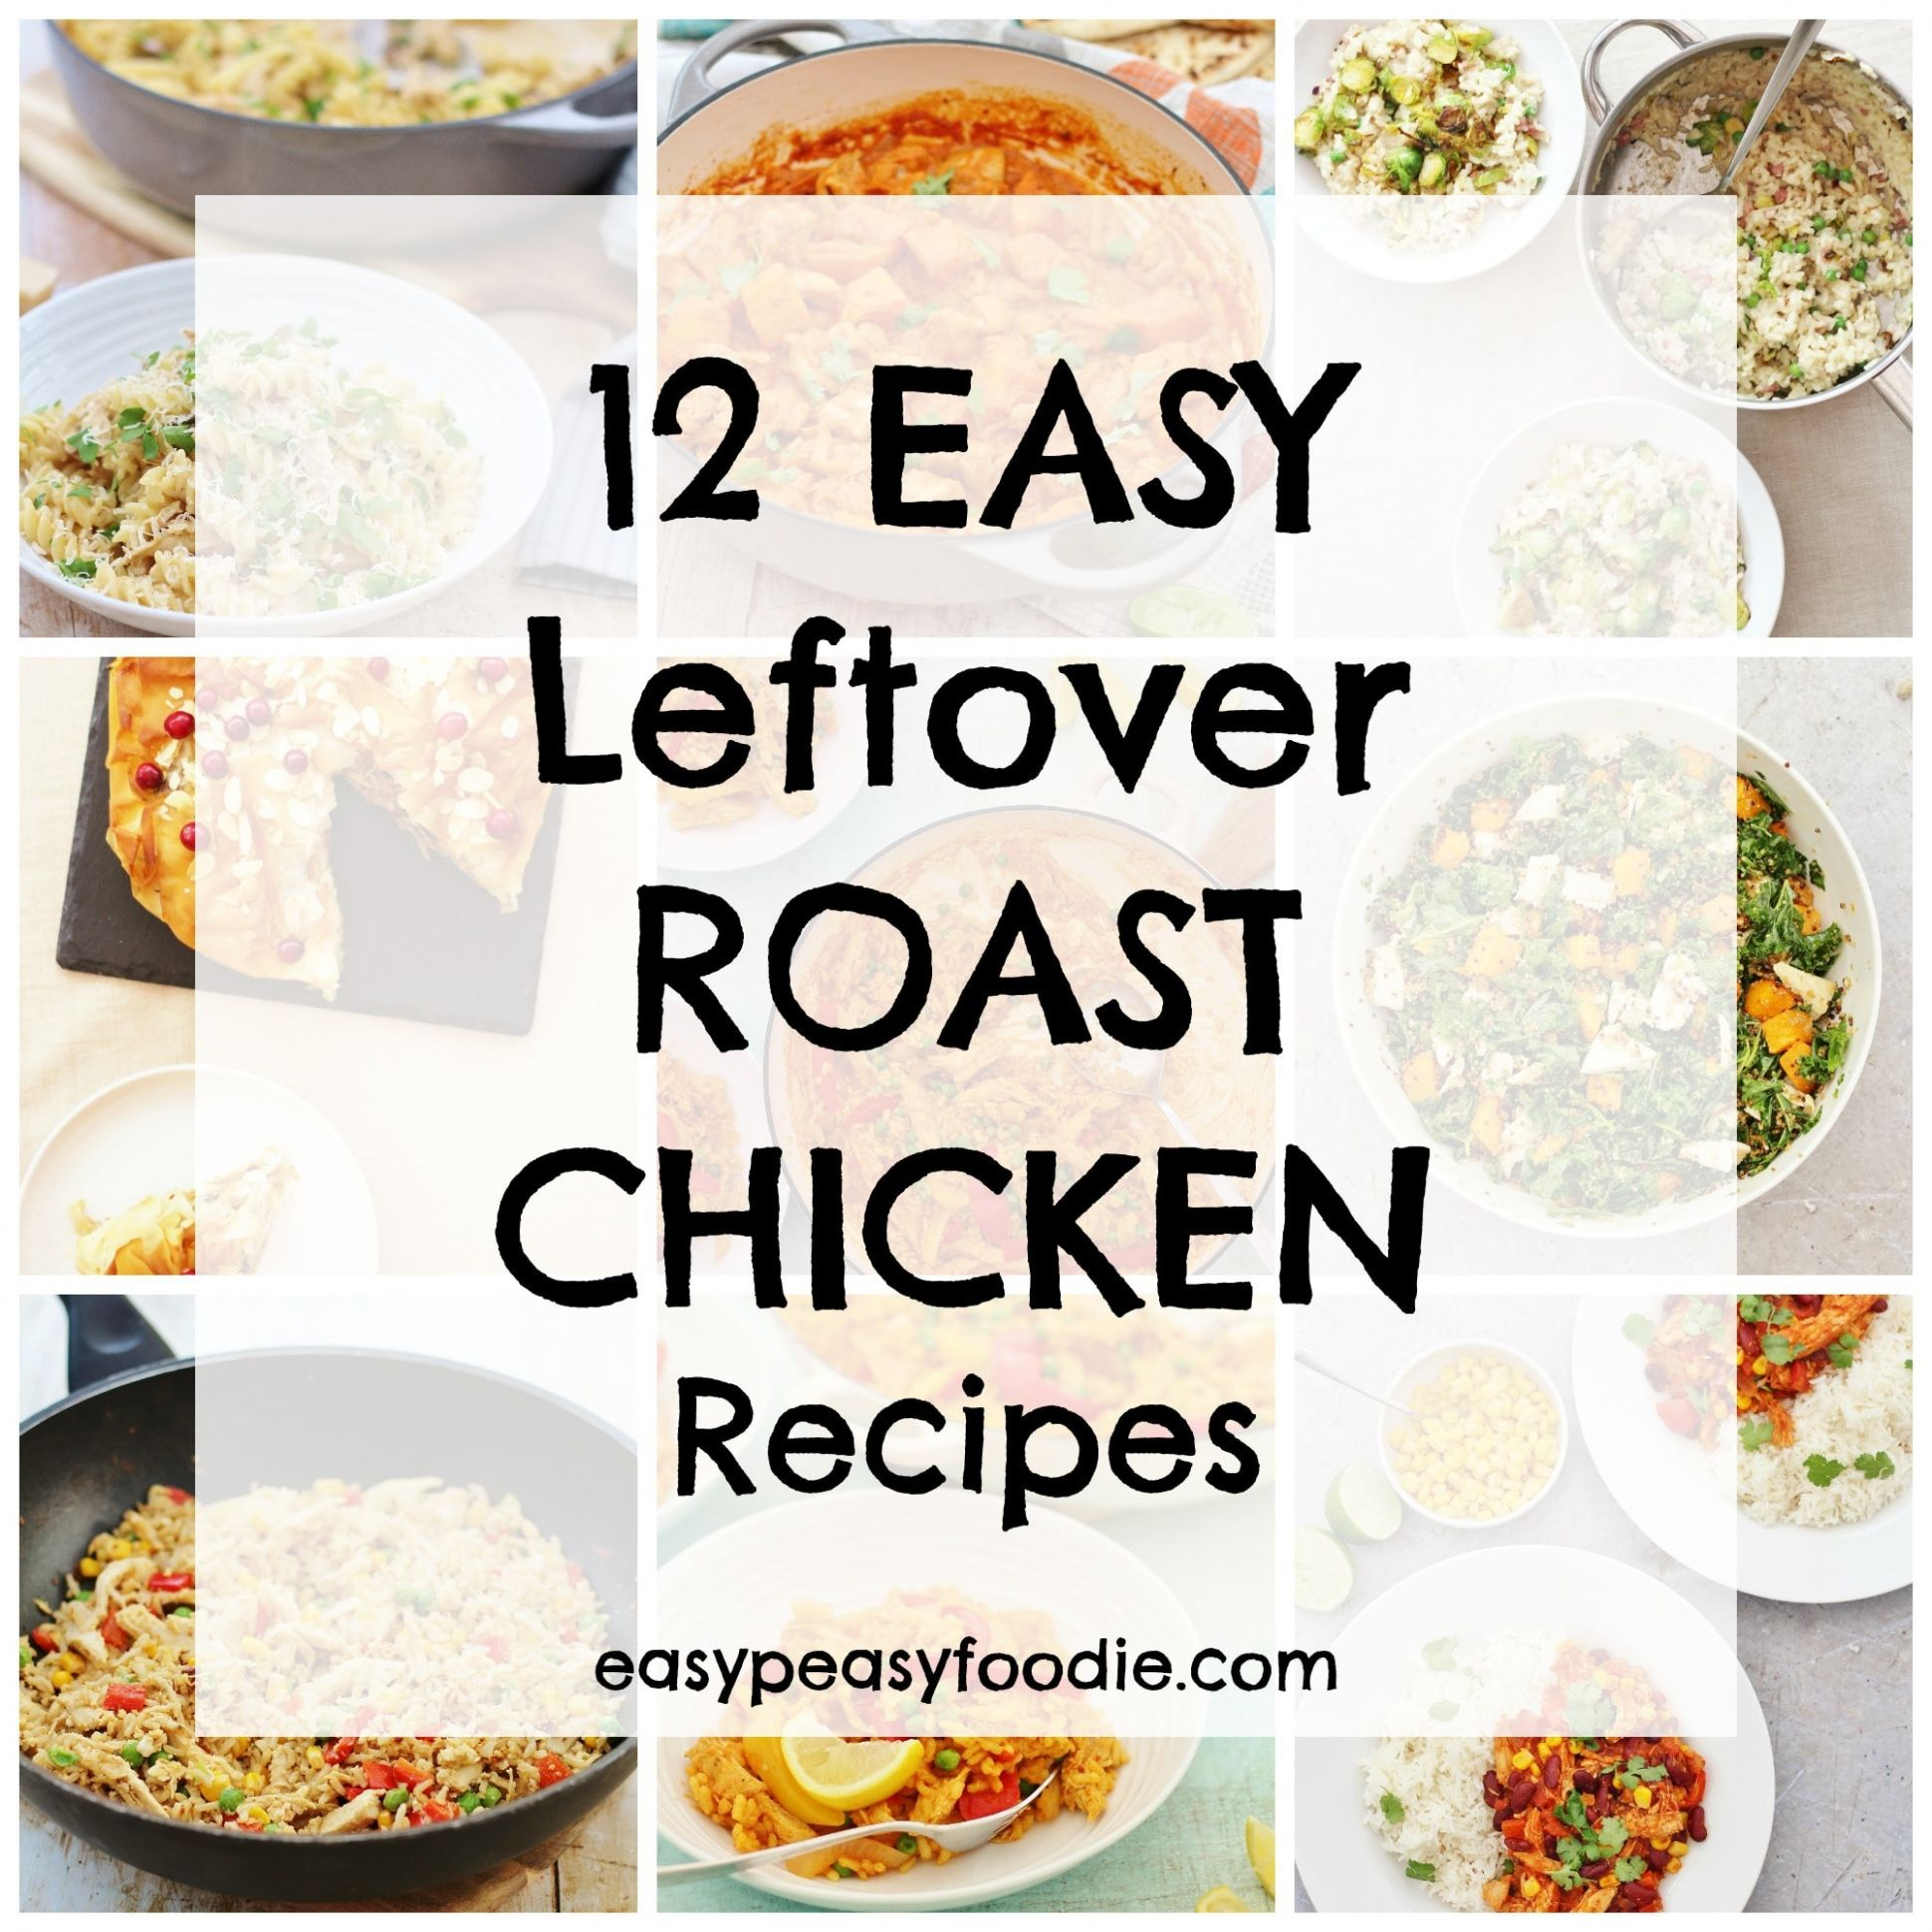 11 Easy Leftover Roast Chicken Recipes - Easy Peasy Foodie - Recipes Chicken Leftovers